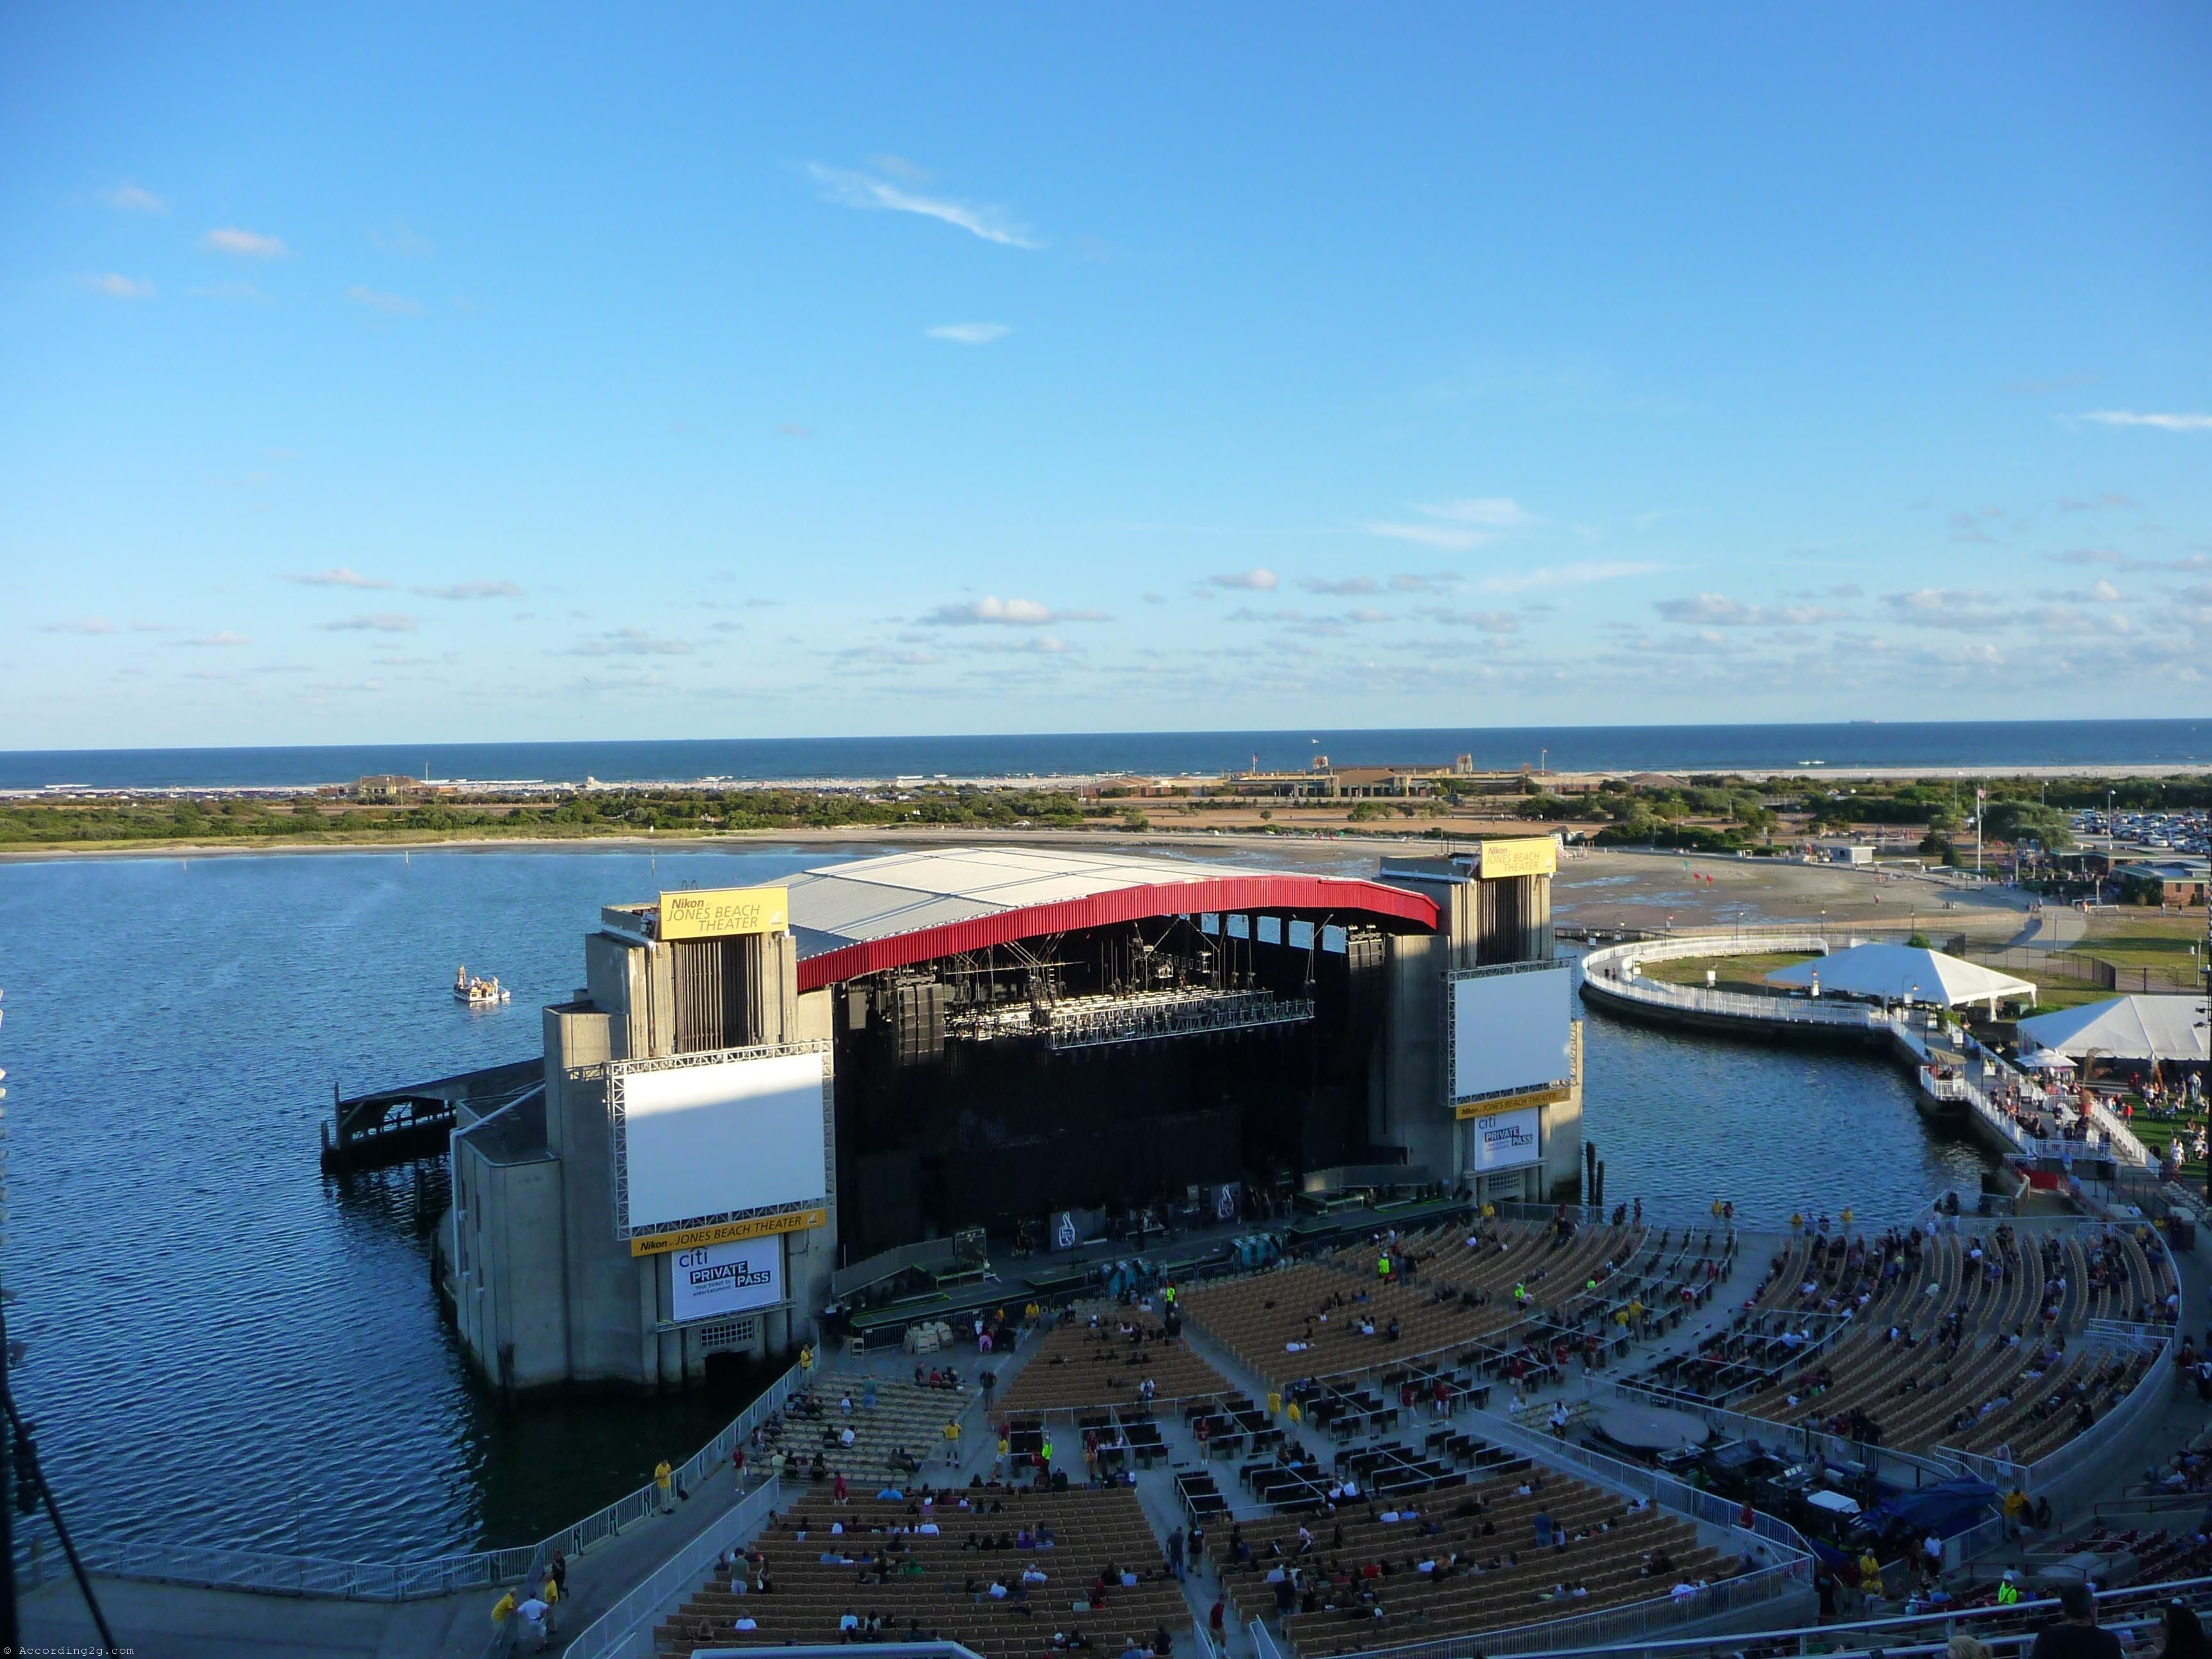 Nikon At Jones Beach Theater In Wantaugh Ny I Saw Dmb At My Hometown Venue On 7 21 09 7 22 09 6 13 12 And Beach Theater Jones Beach One Direction Tickets